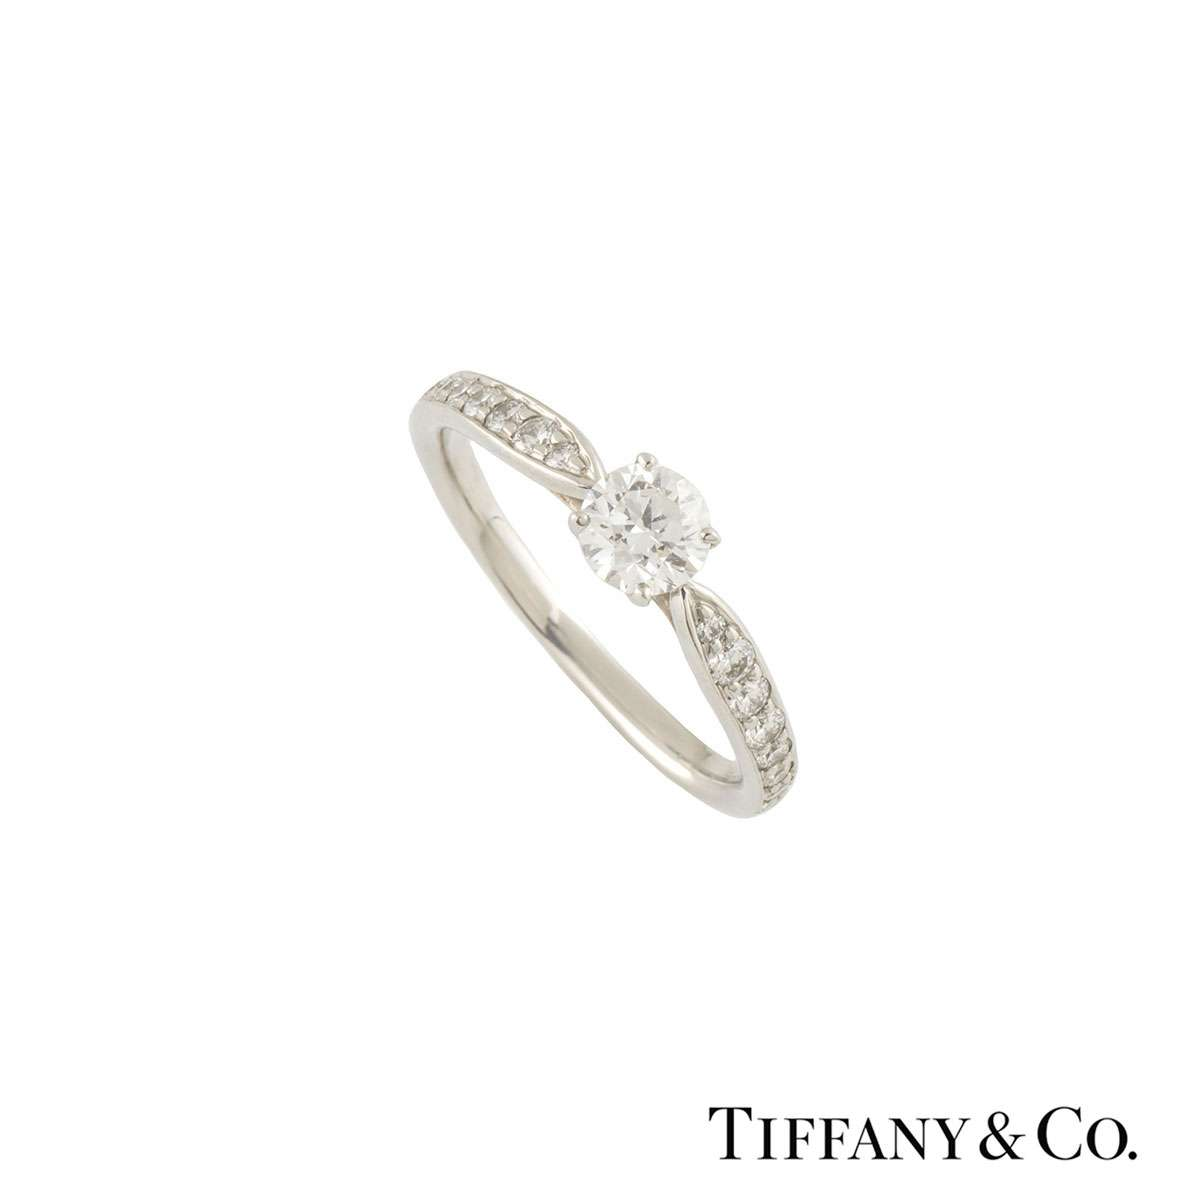 Tiffany Harmony Diamond Ring 0.32ct F/VS2